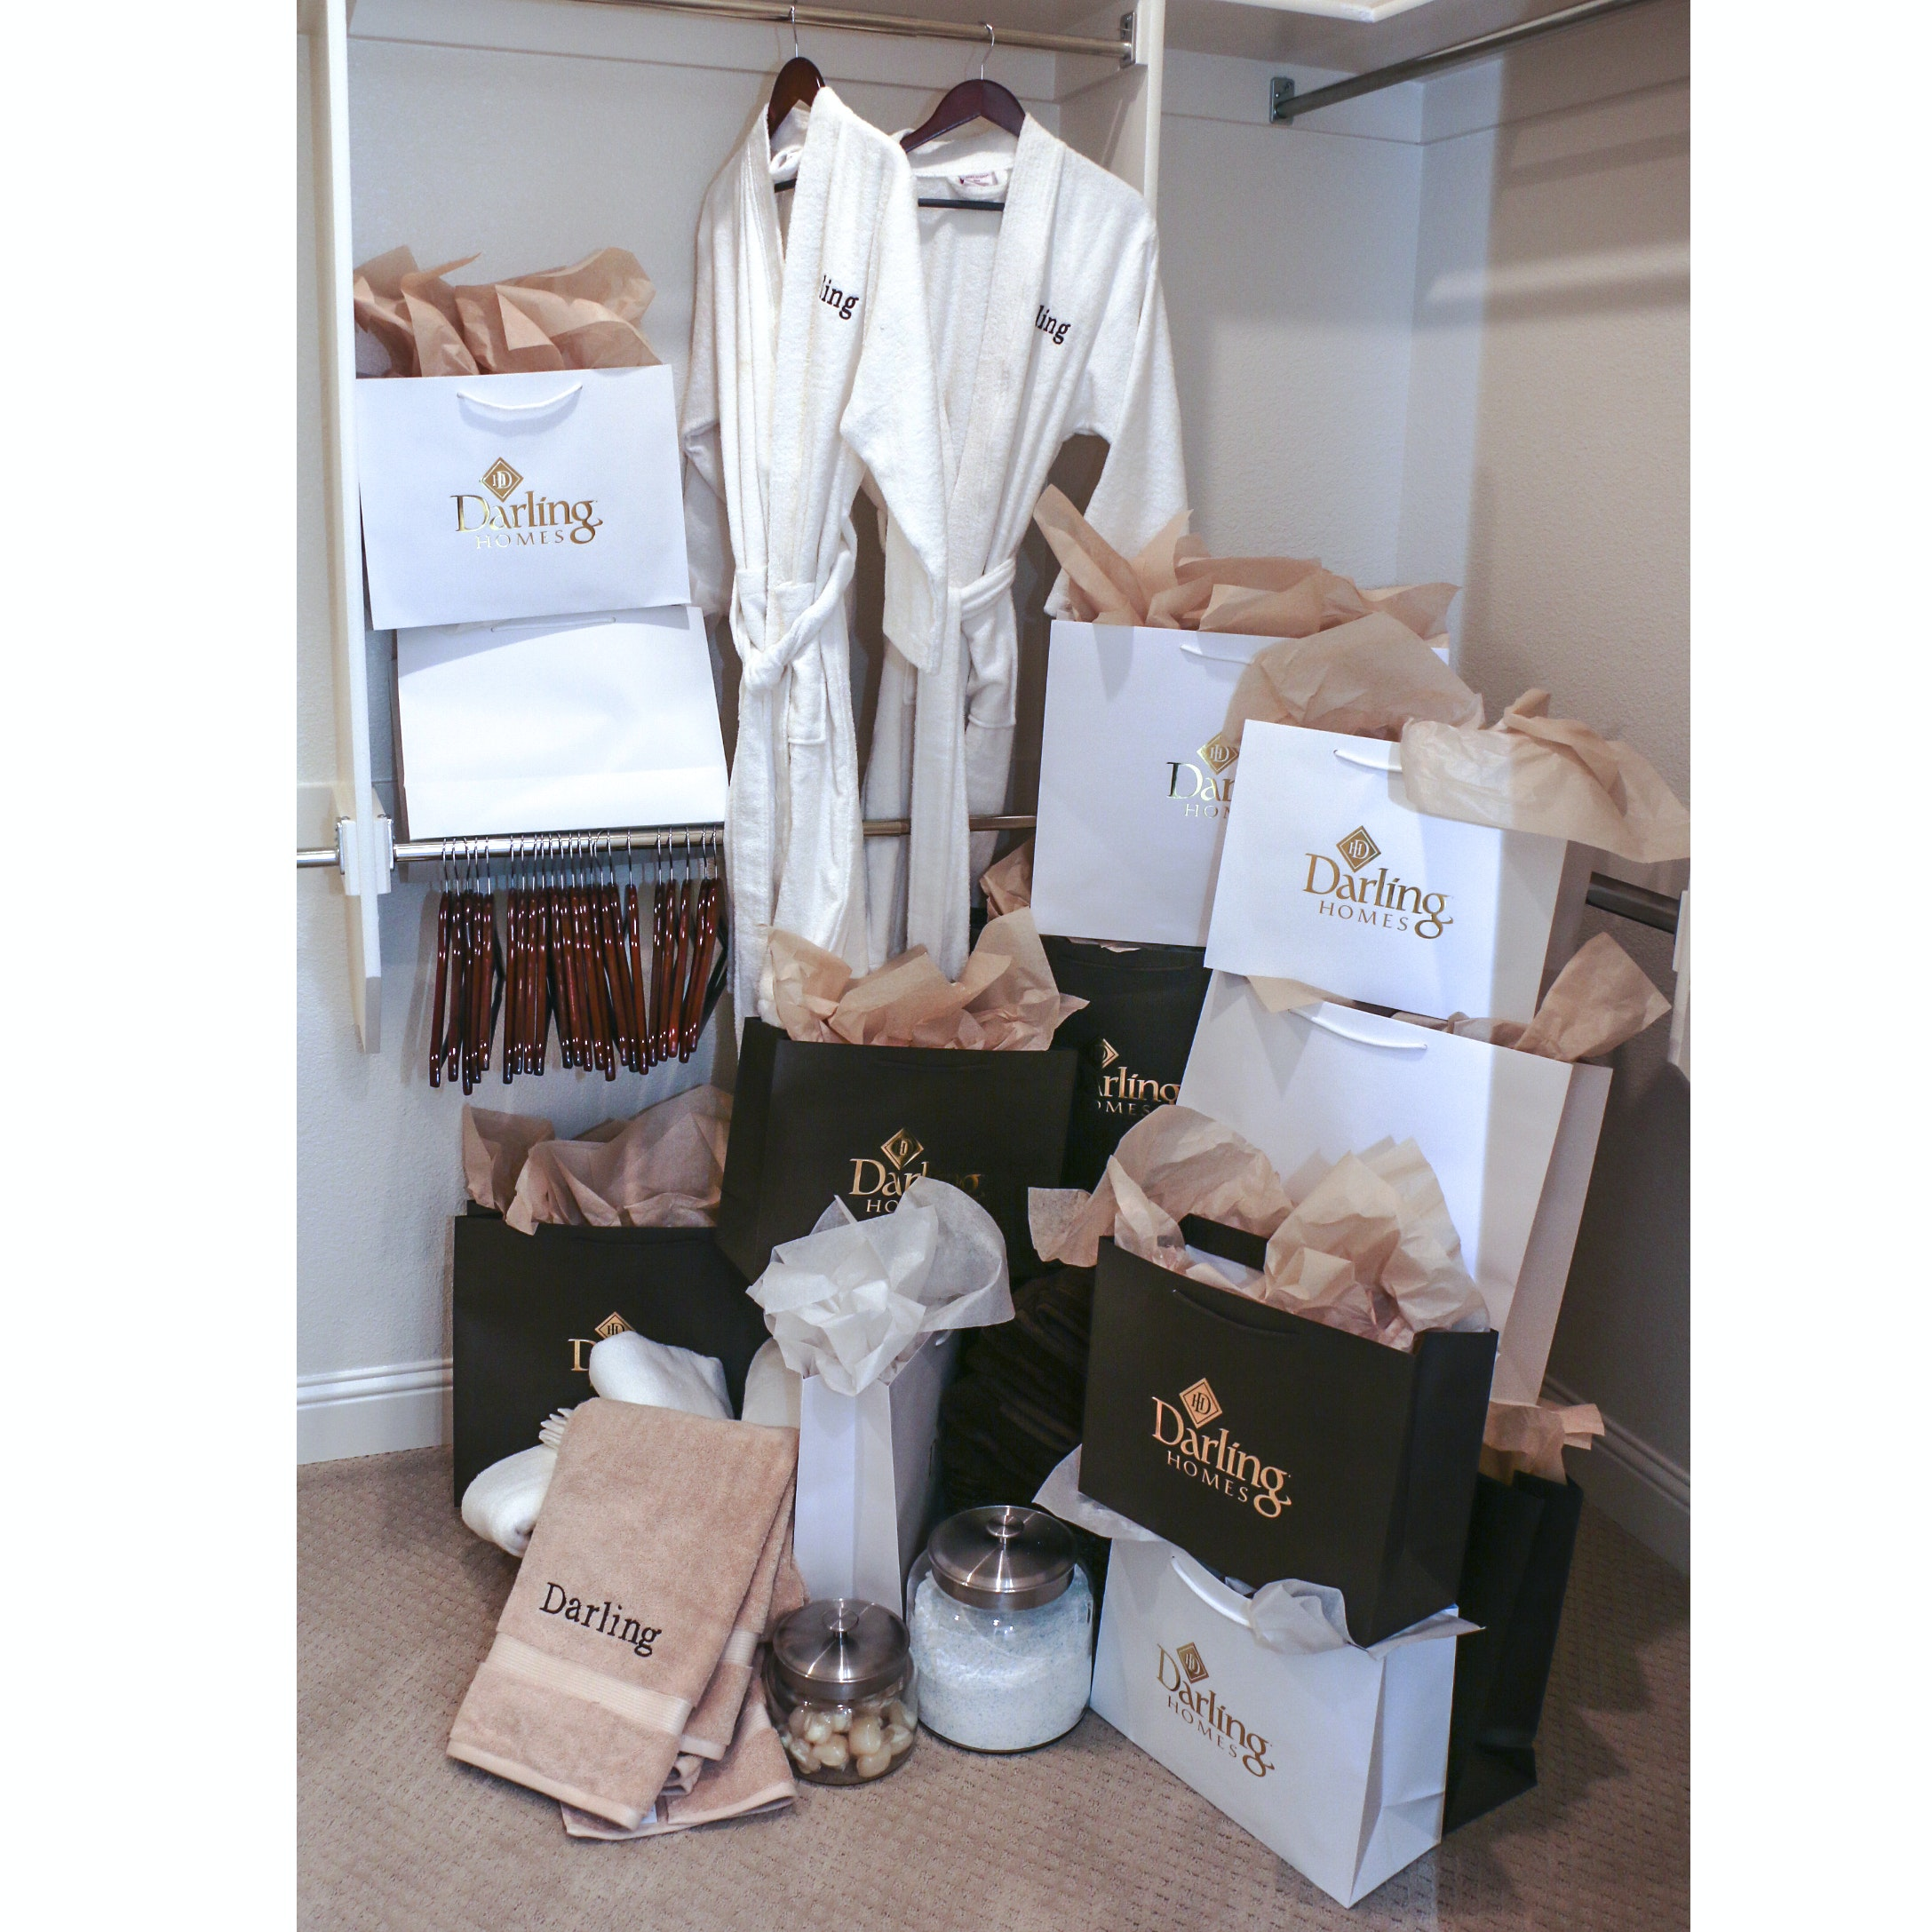 """""""Darling"""" Embroidered Bathrobes, Wooden Hangers, and Gift Bags"""